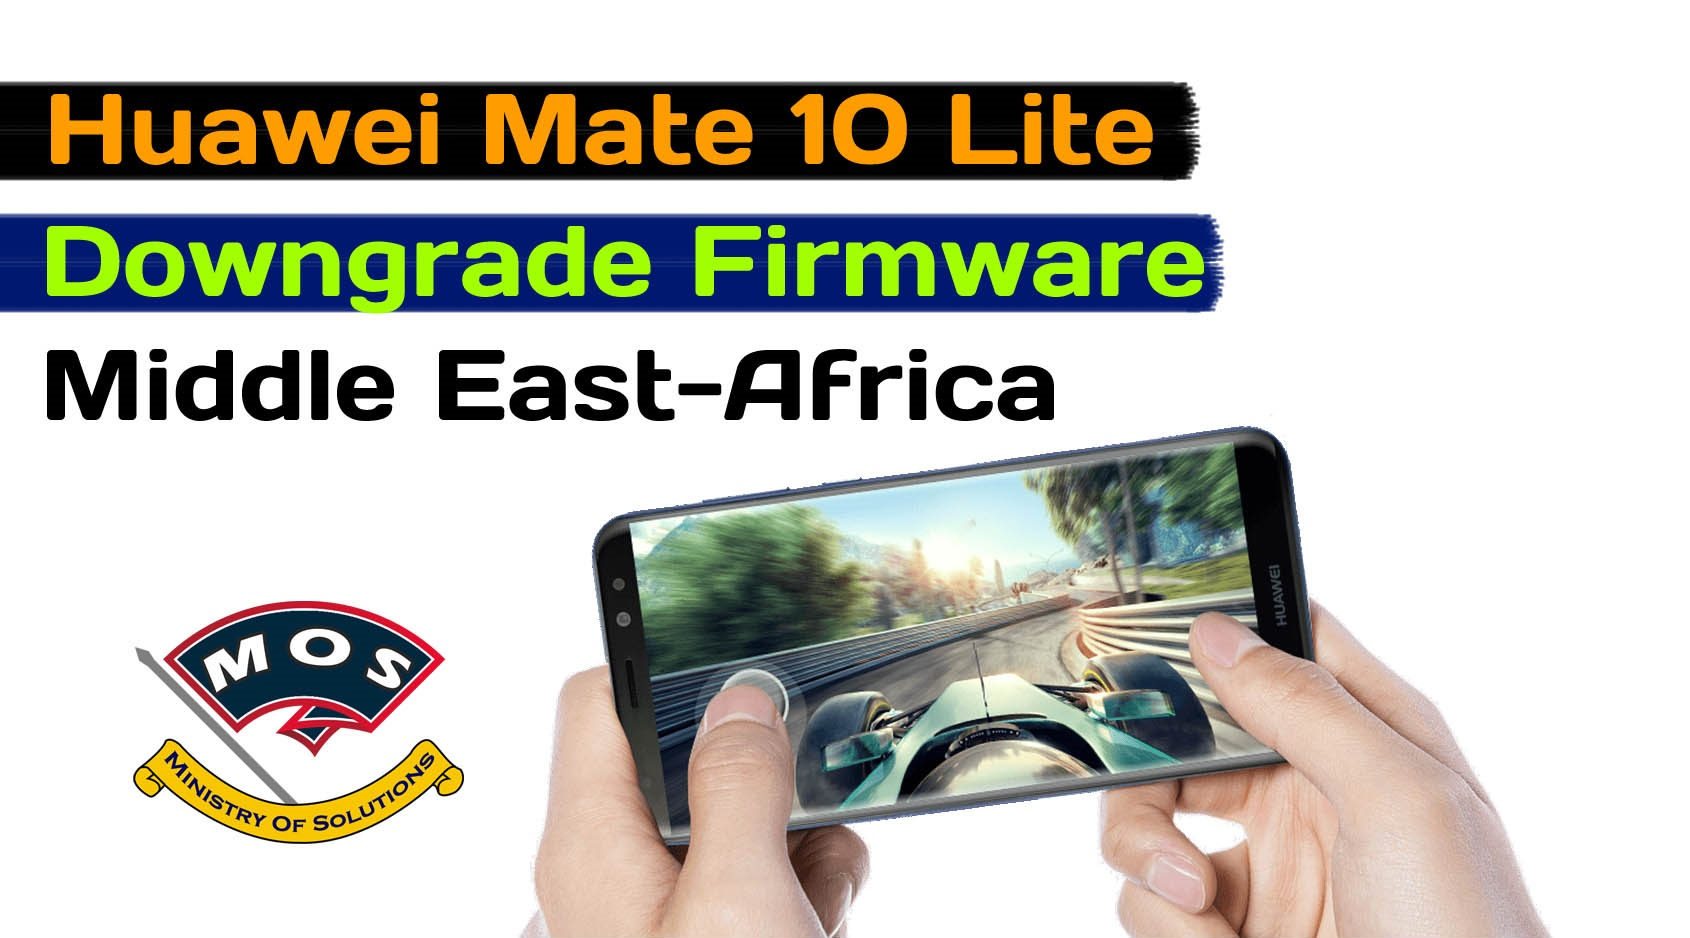 Huawei Mate 10 Lite RNE-L21 Downgrade Firmware (Middle East